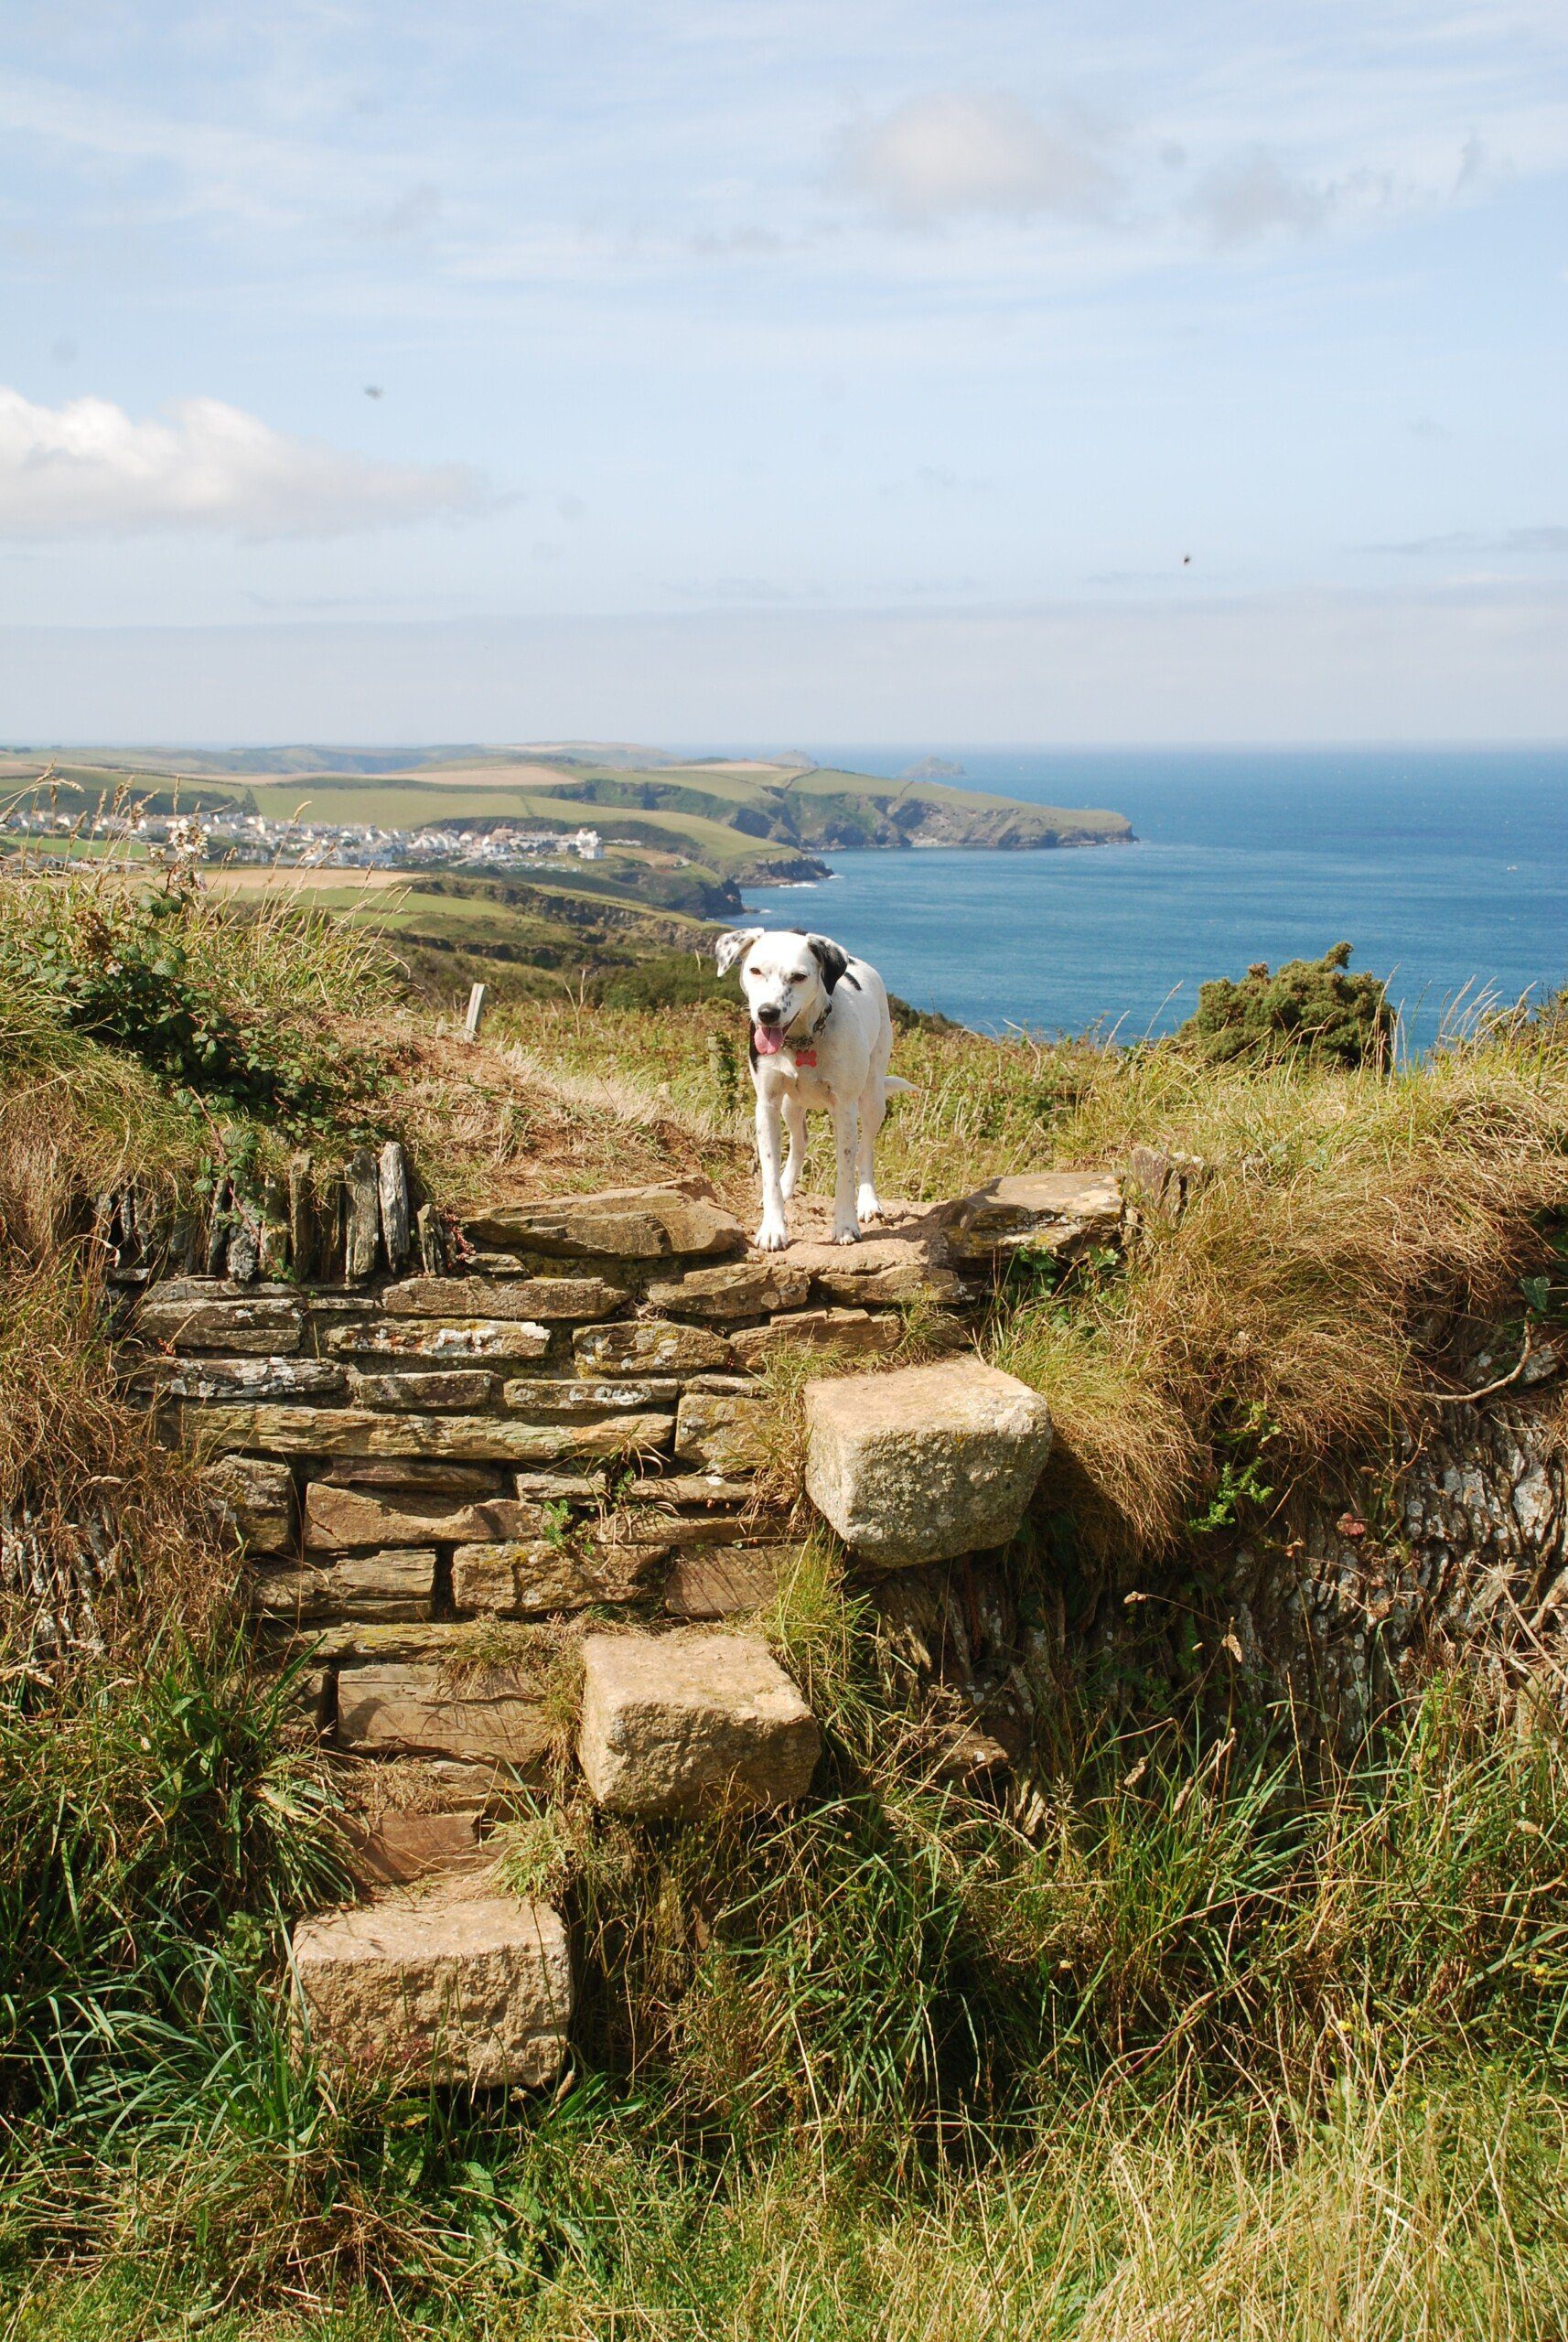 Daisy on stone wall with steps in it and cliffs and sea in background